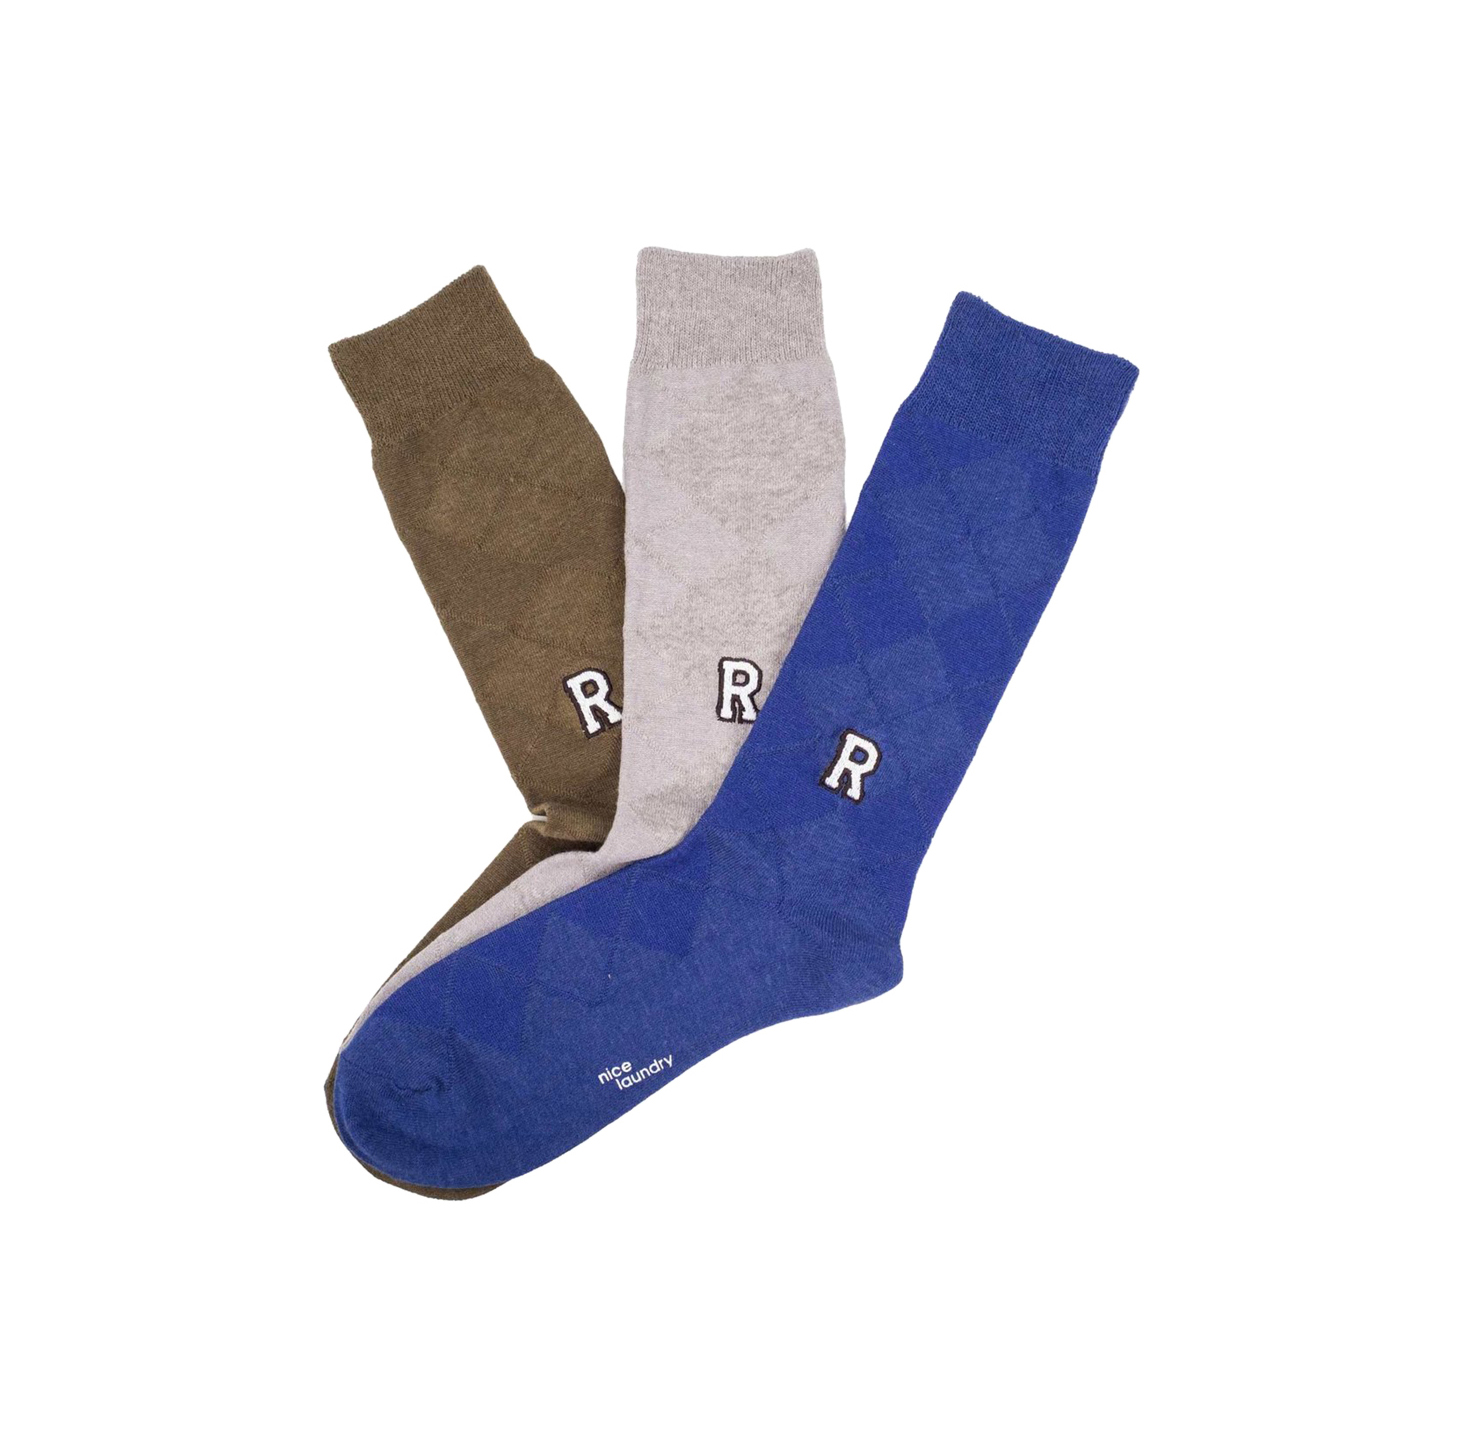 Monogram Sock Trio